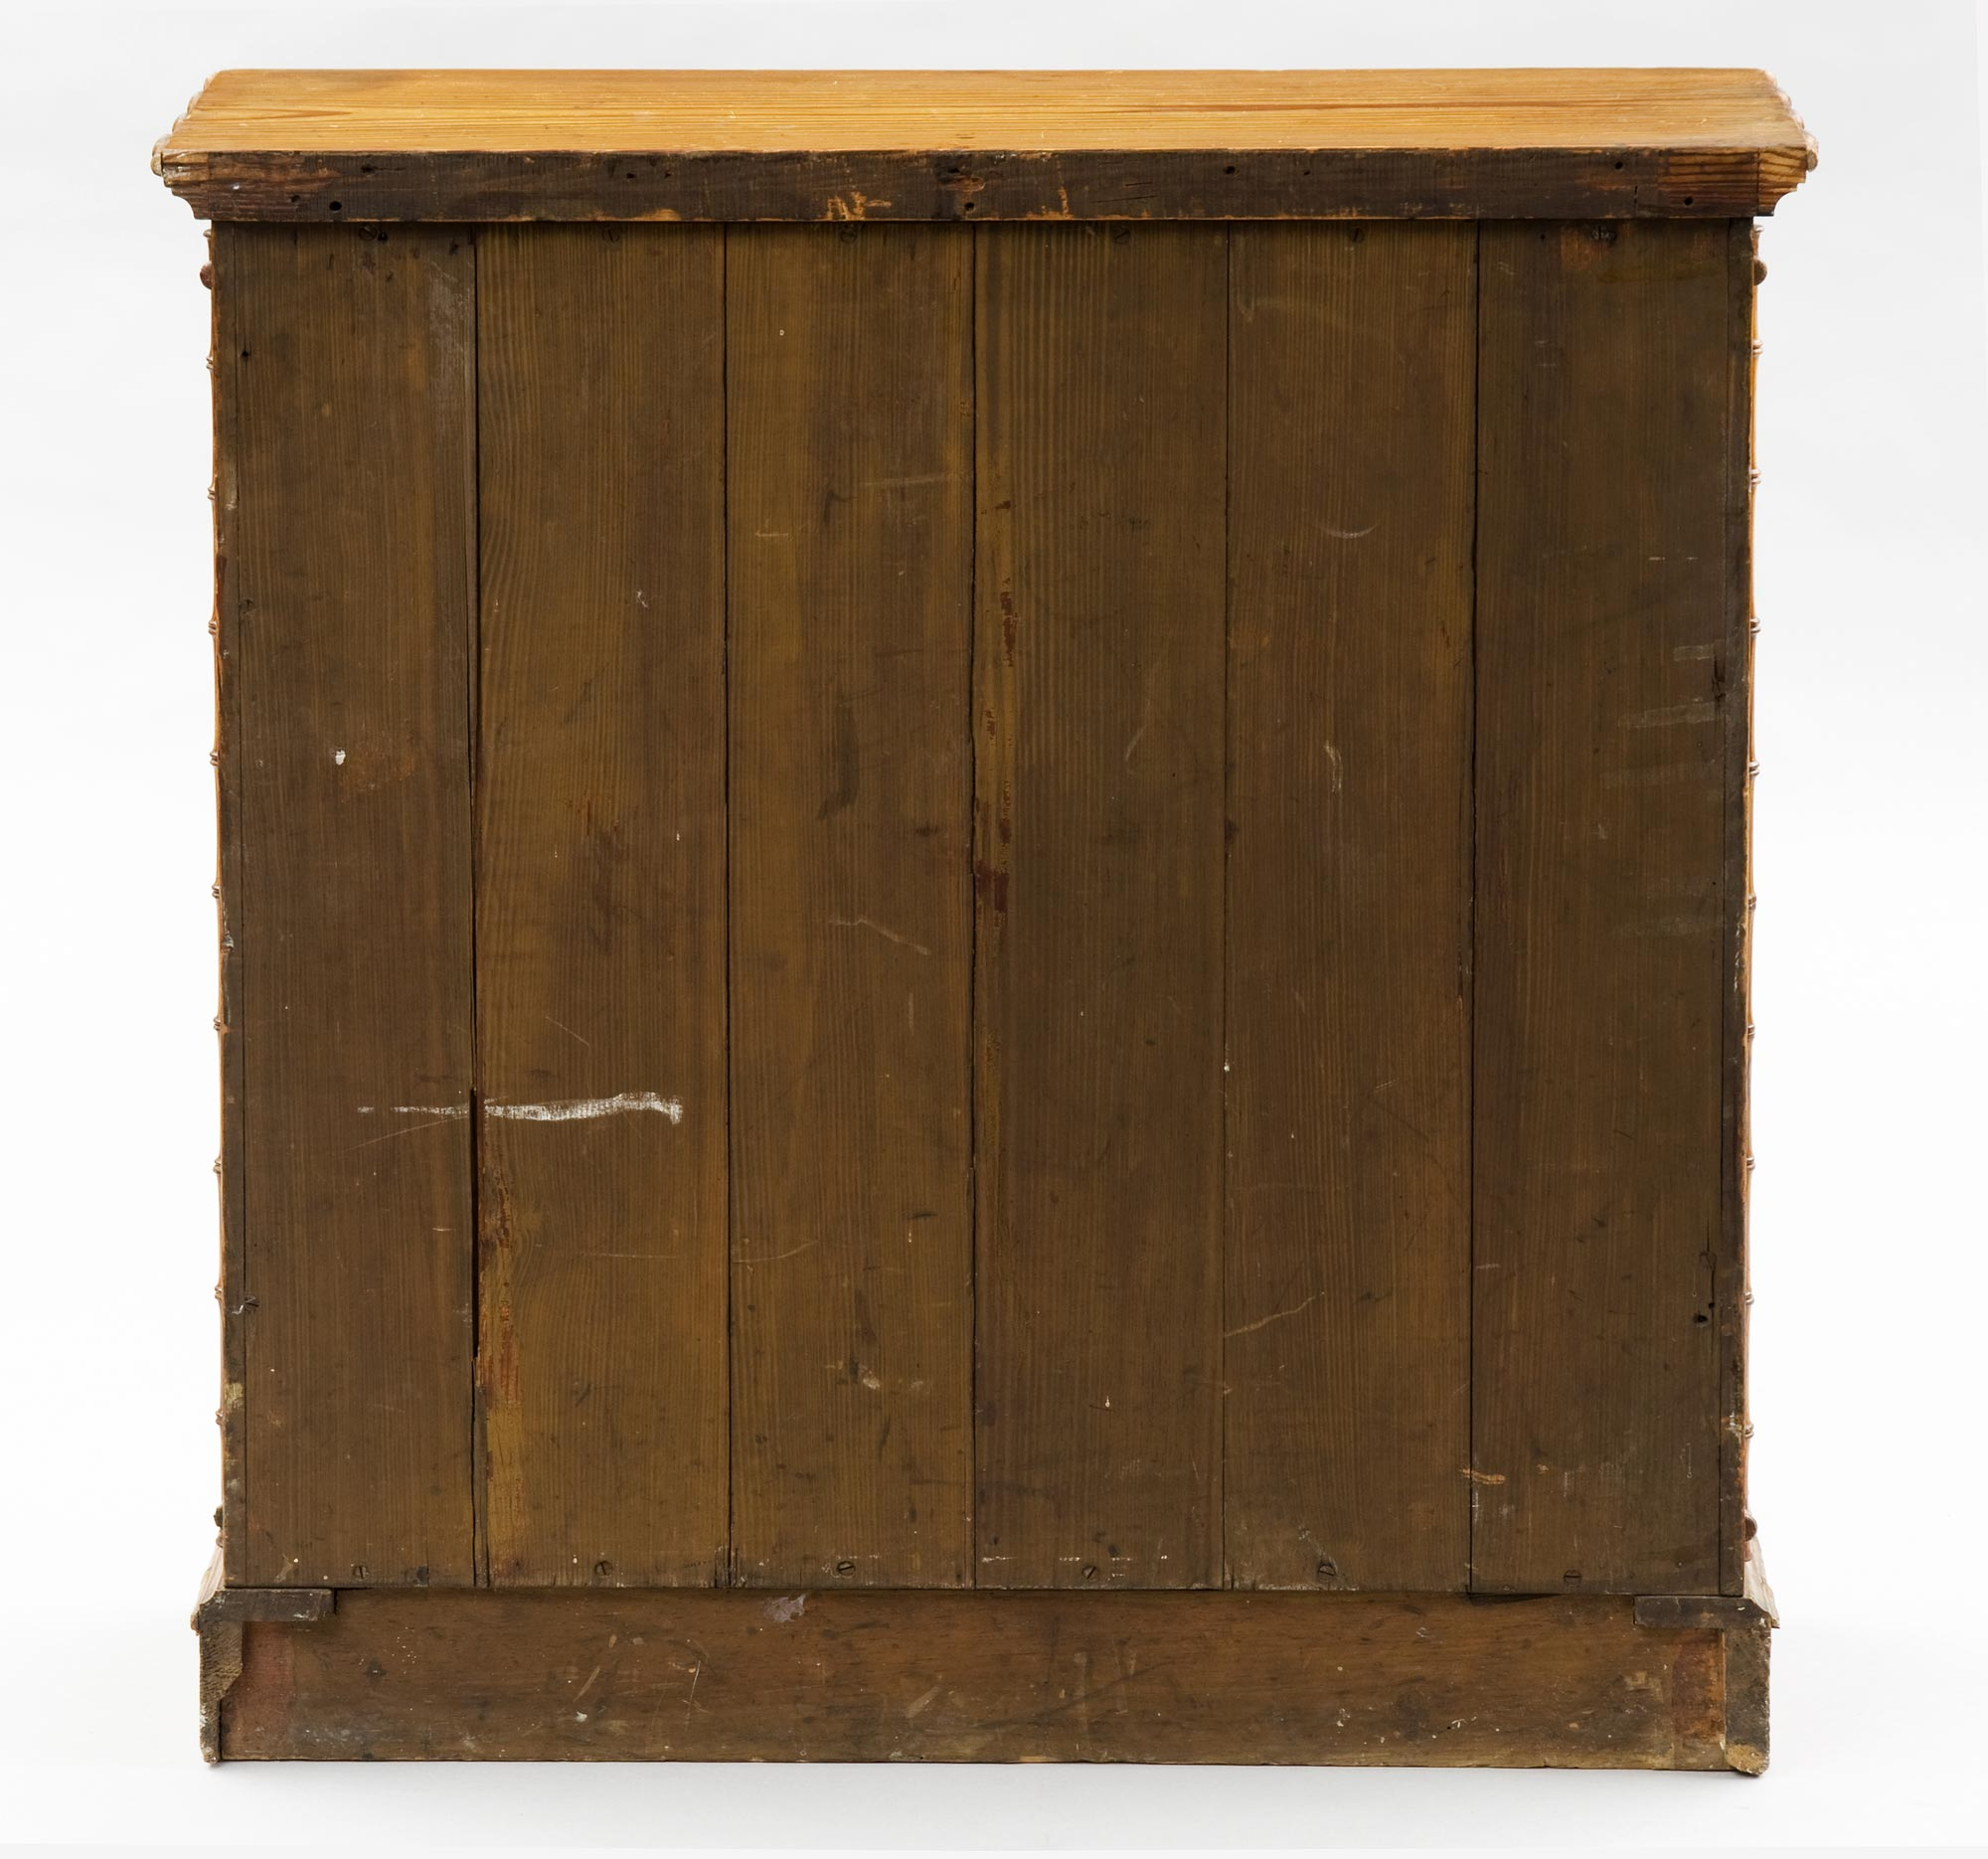 Antique English Faux Bamboo Cabinet Antique English Cabinets